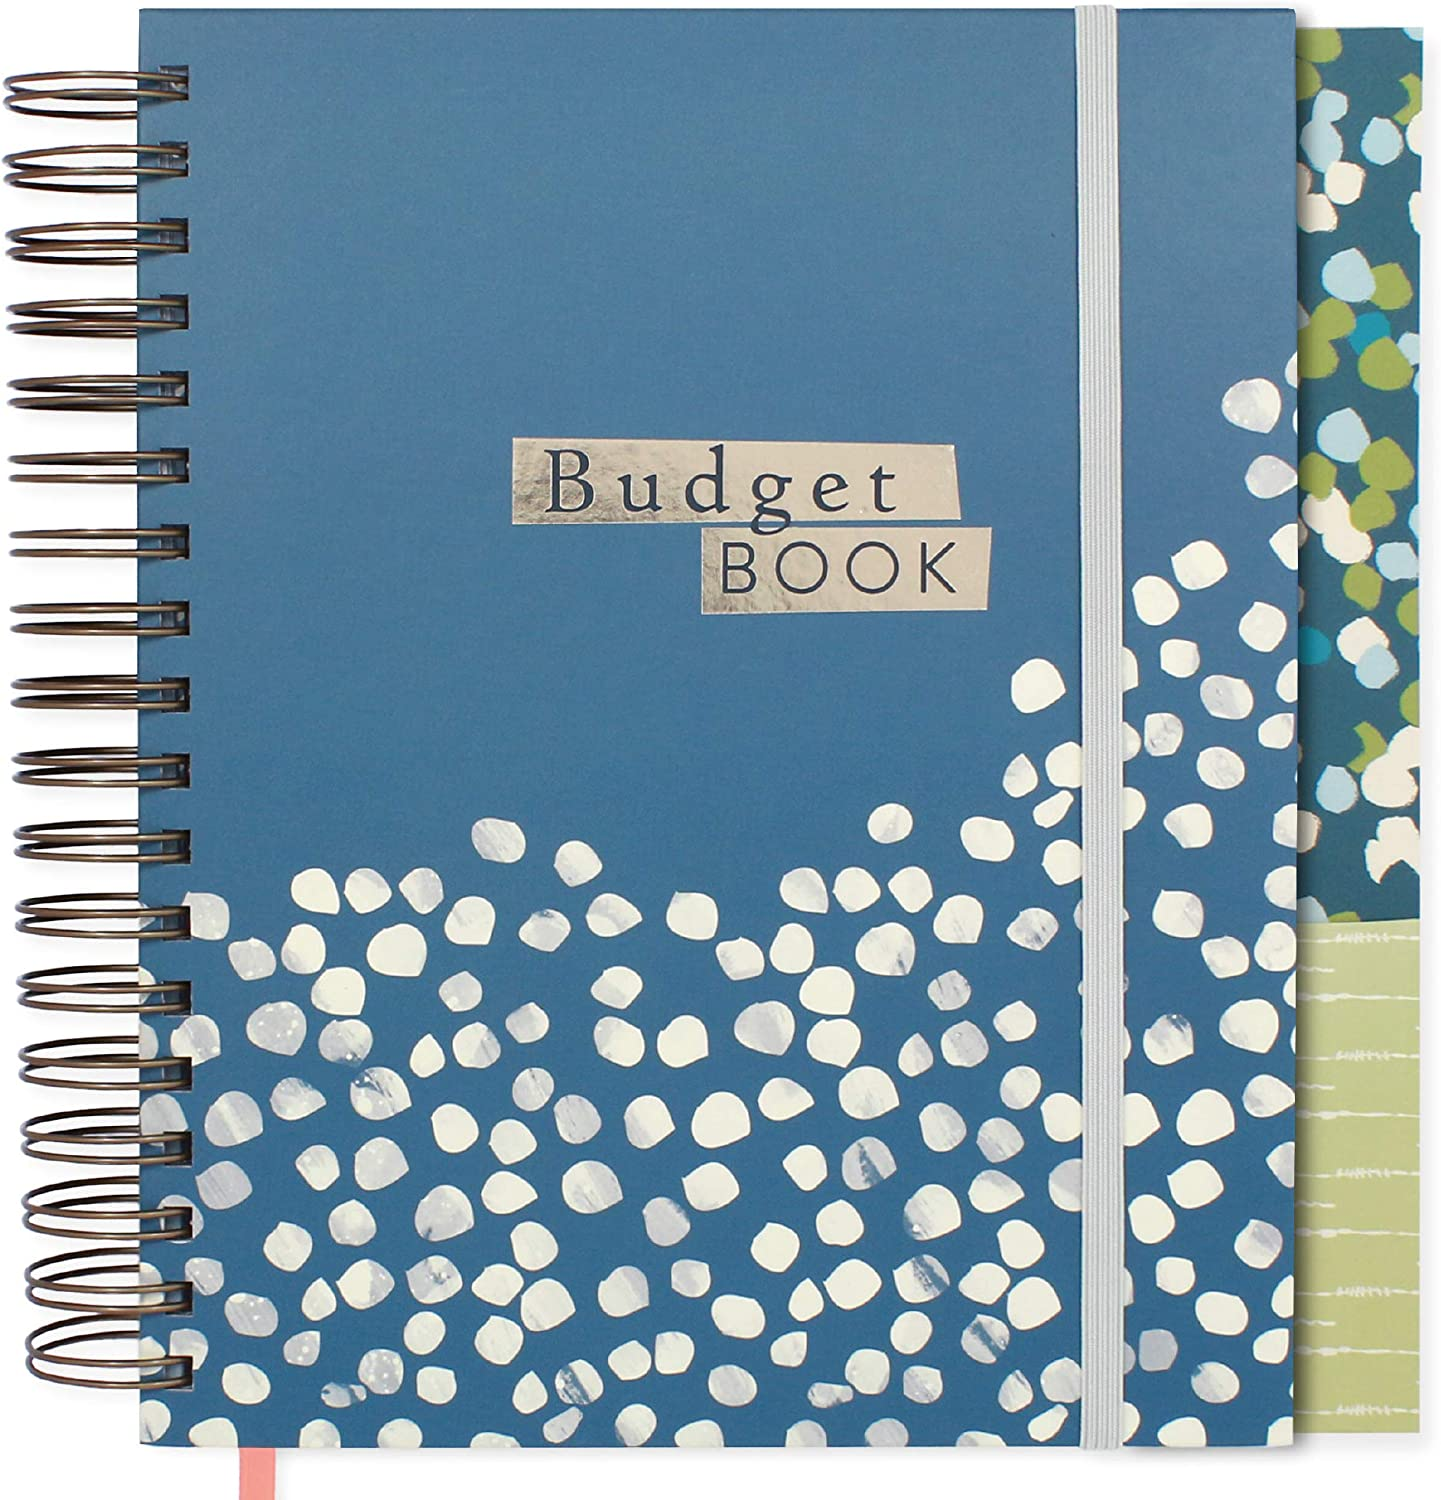 Boxclever Press Budget Planner. Undated Monthly Planner & Bill Organizer with Pockets, Expense and Bill Trackers. Undated Planner to start Budgeting & Saving today! Budget Book measures 9.5 x 8ins.